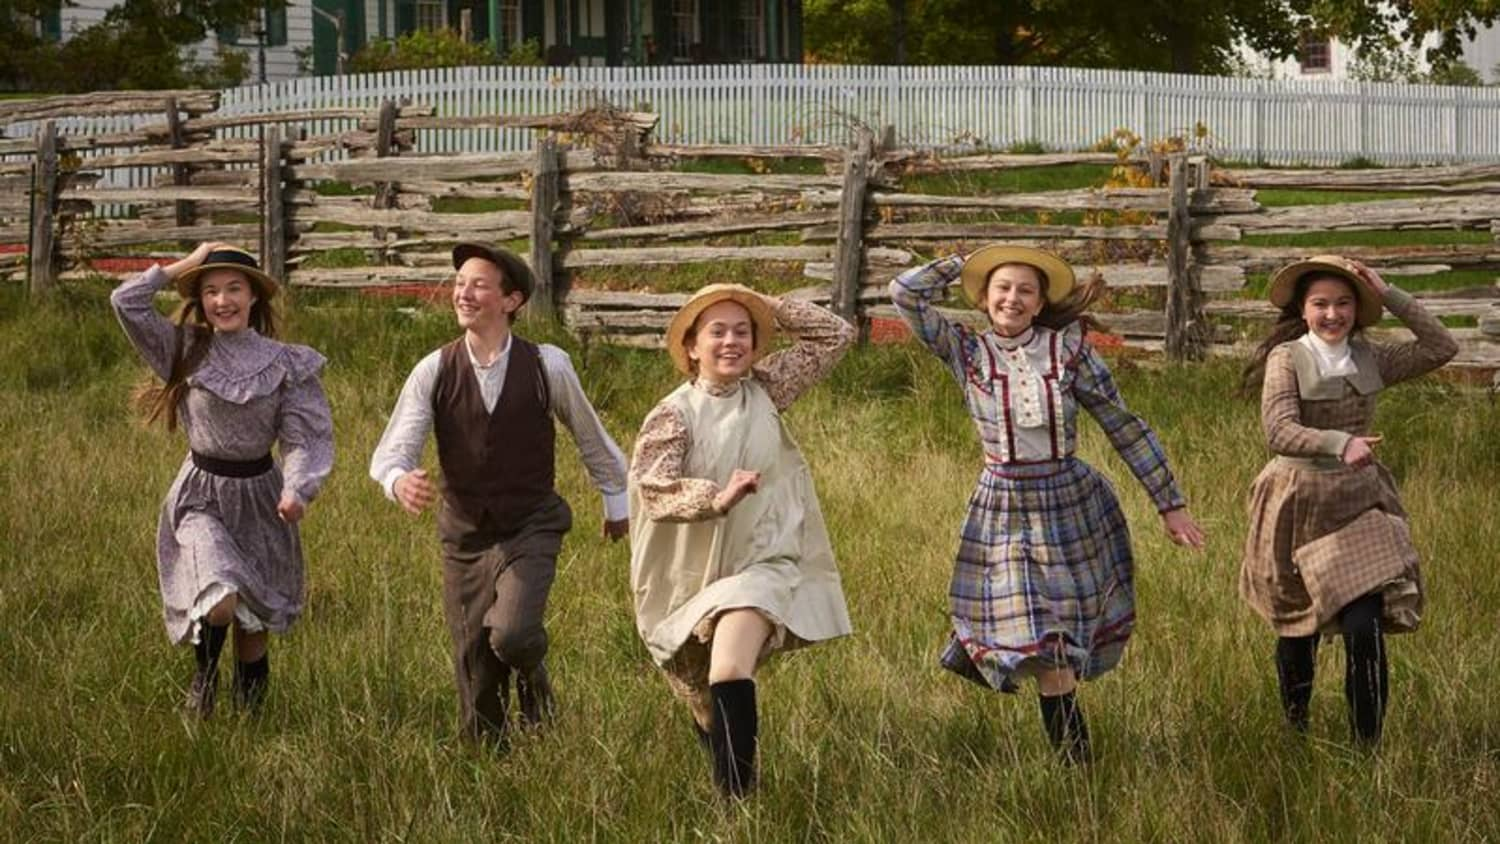 Pbs To Air Anne Of Green Gables Sequel On Thanksgiving